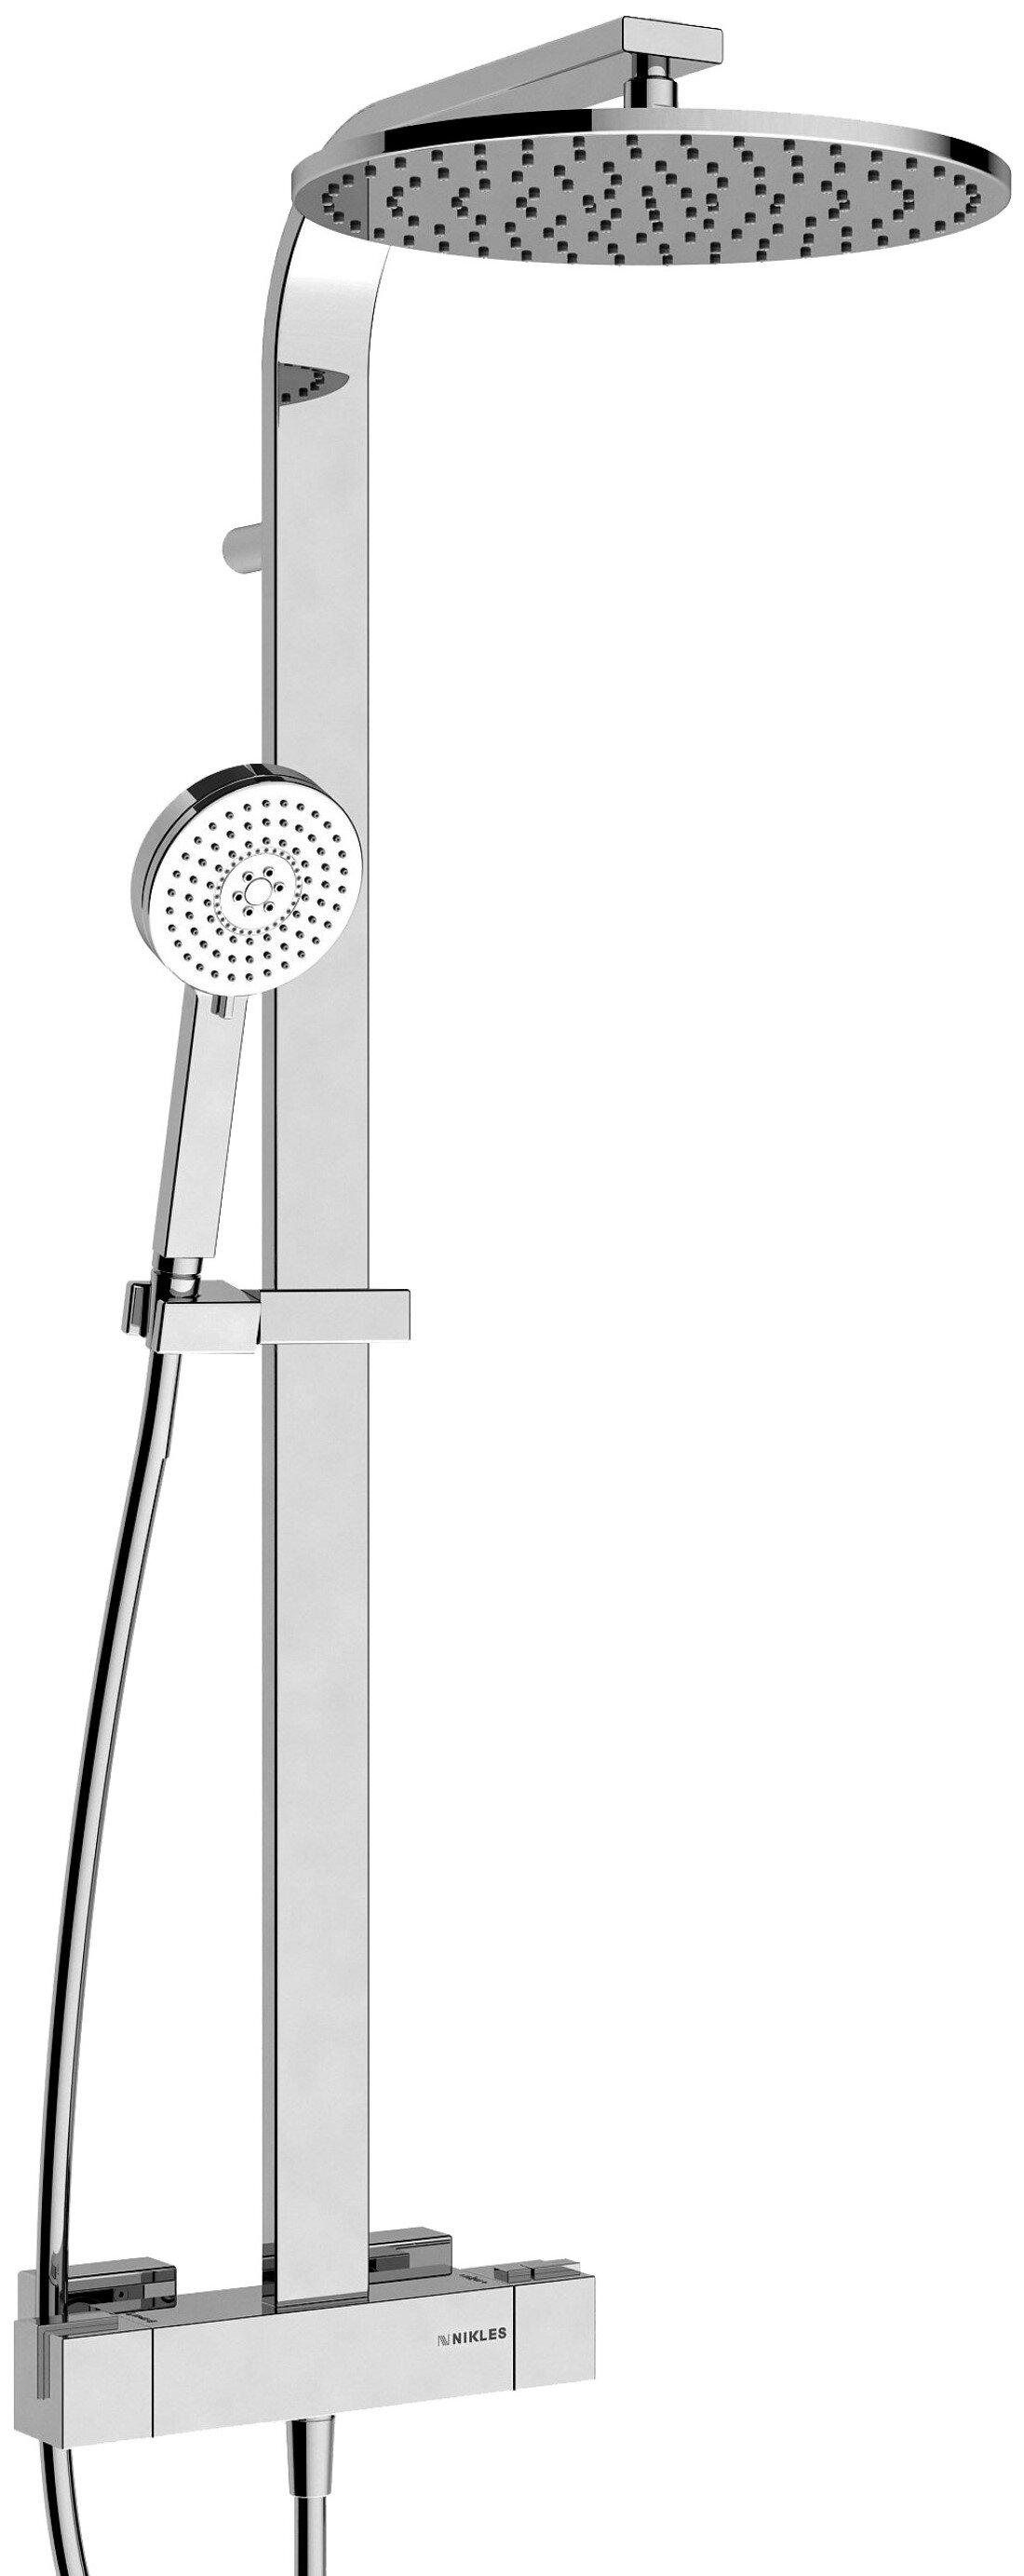 Nikles Pure Techno Thermostatic Complete Shower System With Rough In Valve Wayfair